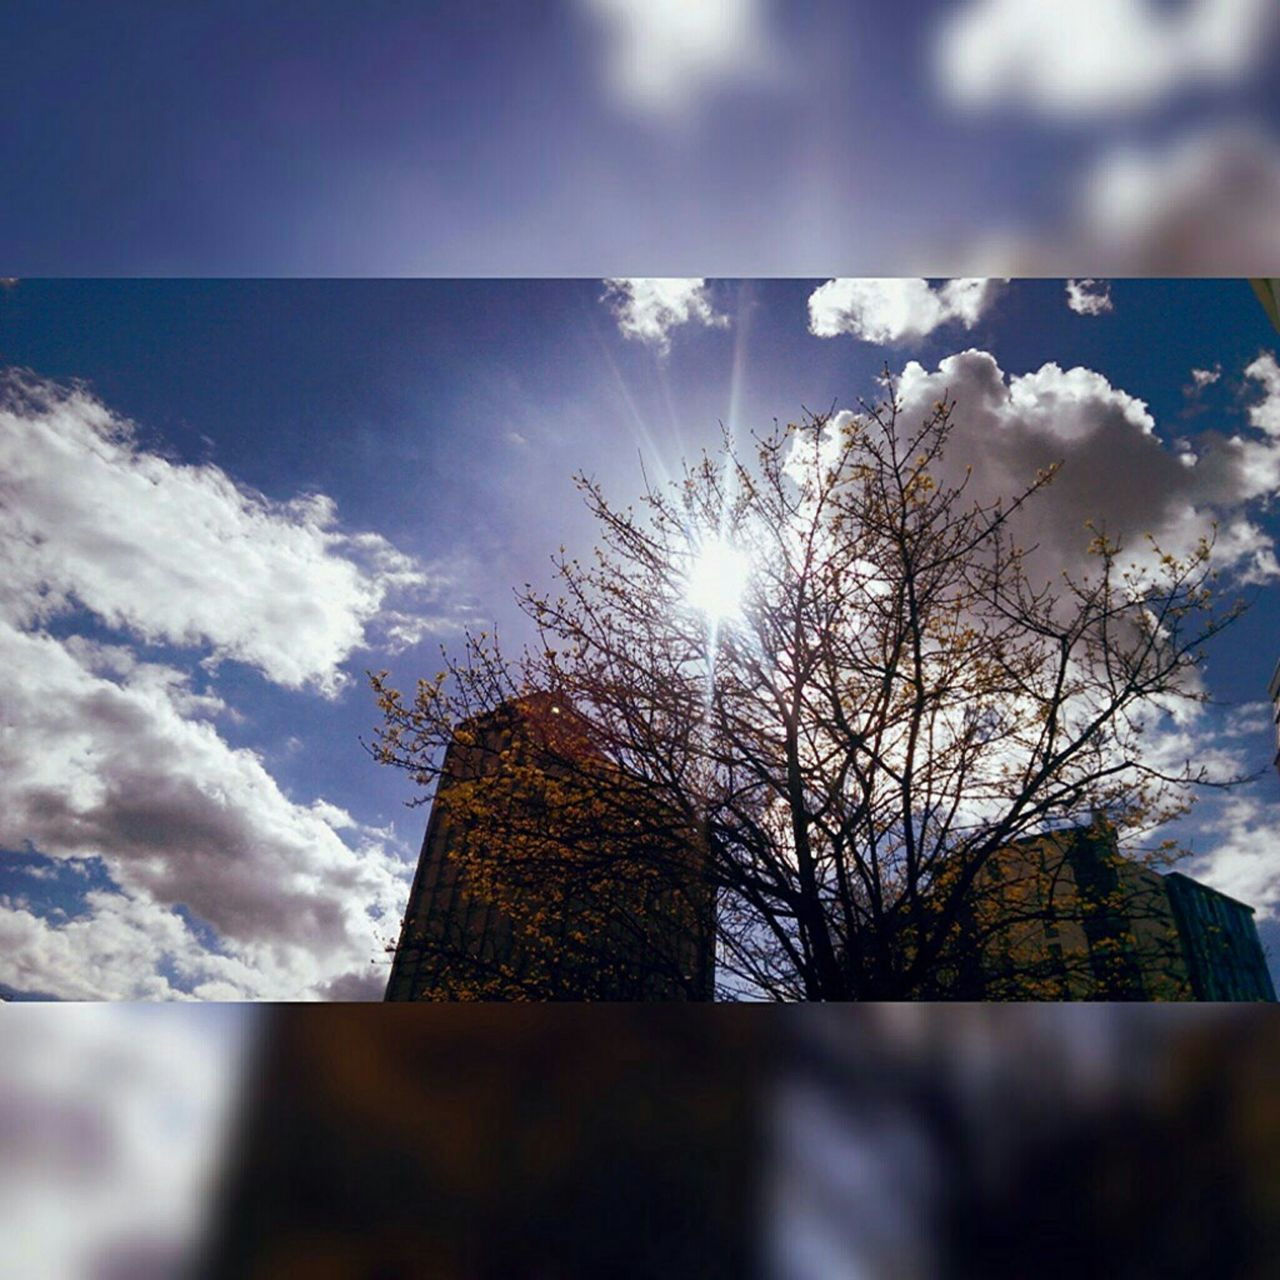 Nature in rhe city☀💙 Adapted To The City Sun Sunbeams Architecture Cityscape Sky Nature No People Tree Branches Sun Through Trees Blue Sky Puffy Clouds Nature And City Beauty In Nature Day Nature And Architecture In Harmony Artistic Photography Skylovers Sky Nature Mobile Photography Spring 2016 Bristol, England EyeEm New Here